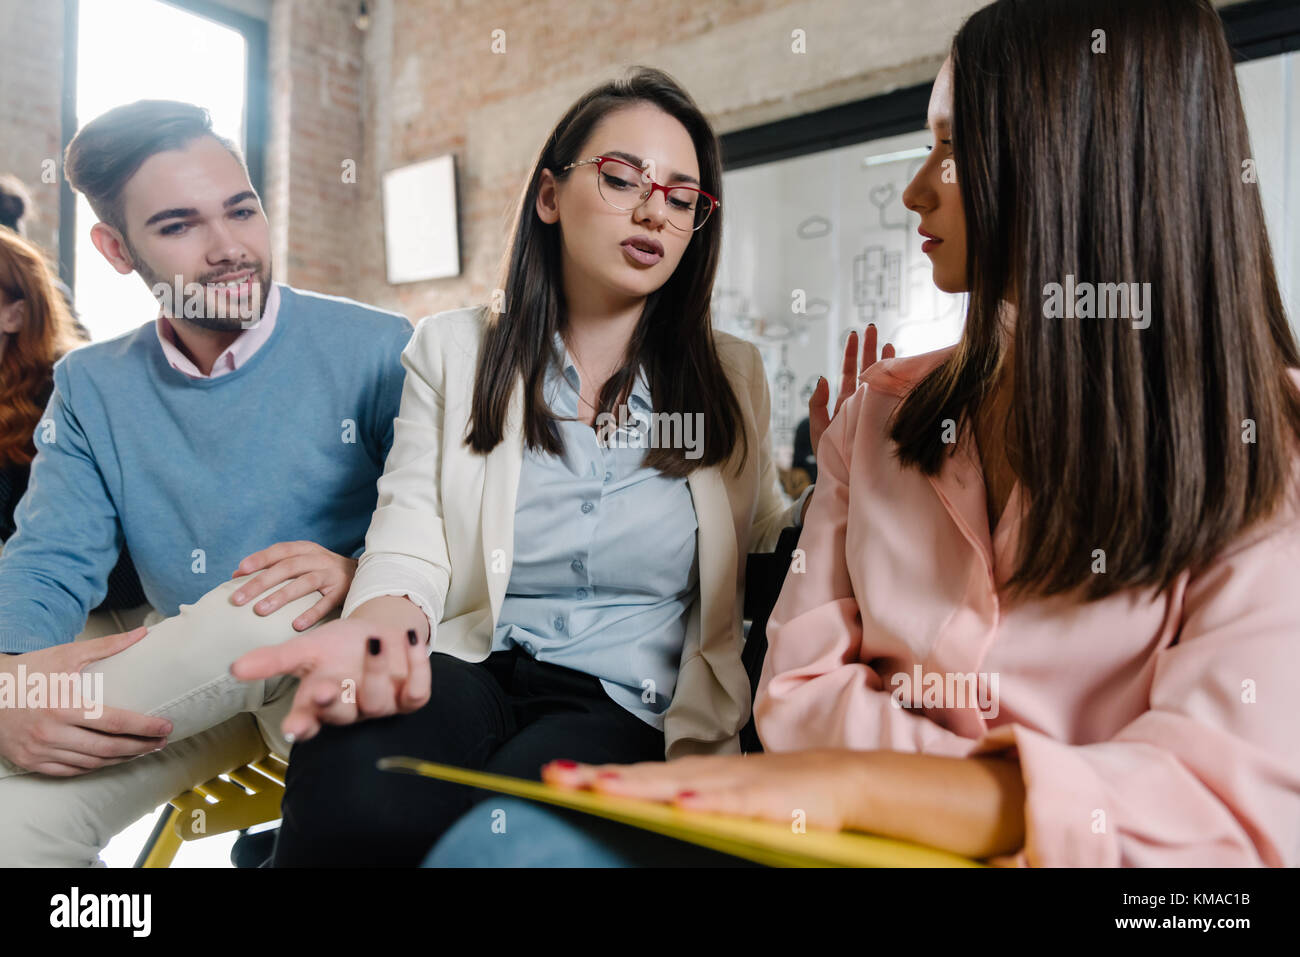 Job candidates talking before their interview - Stock Image